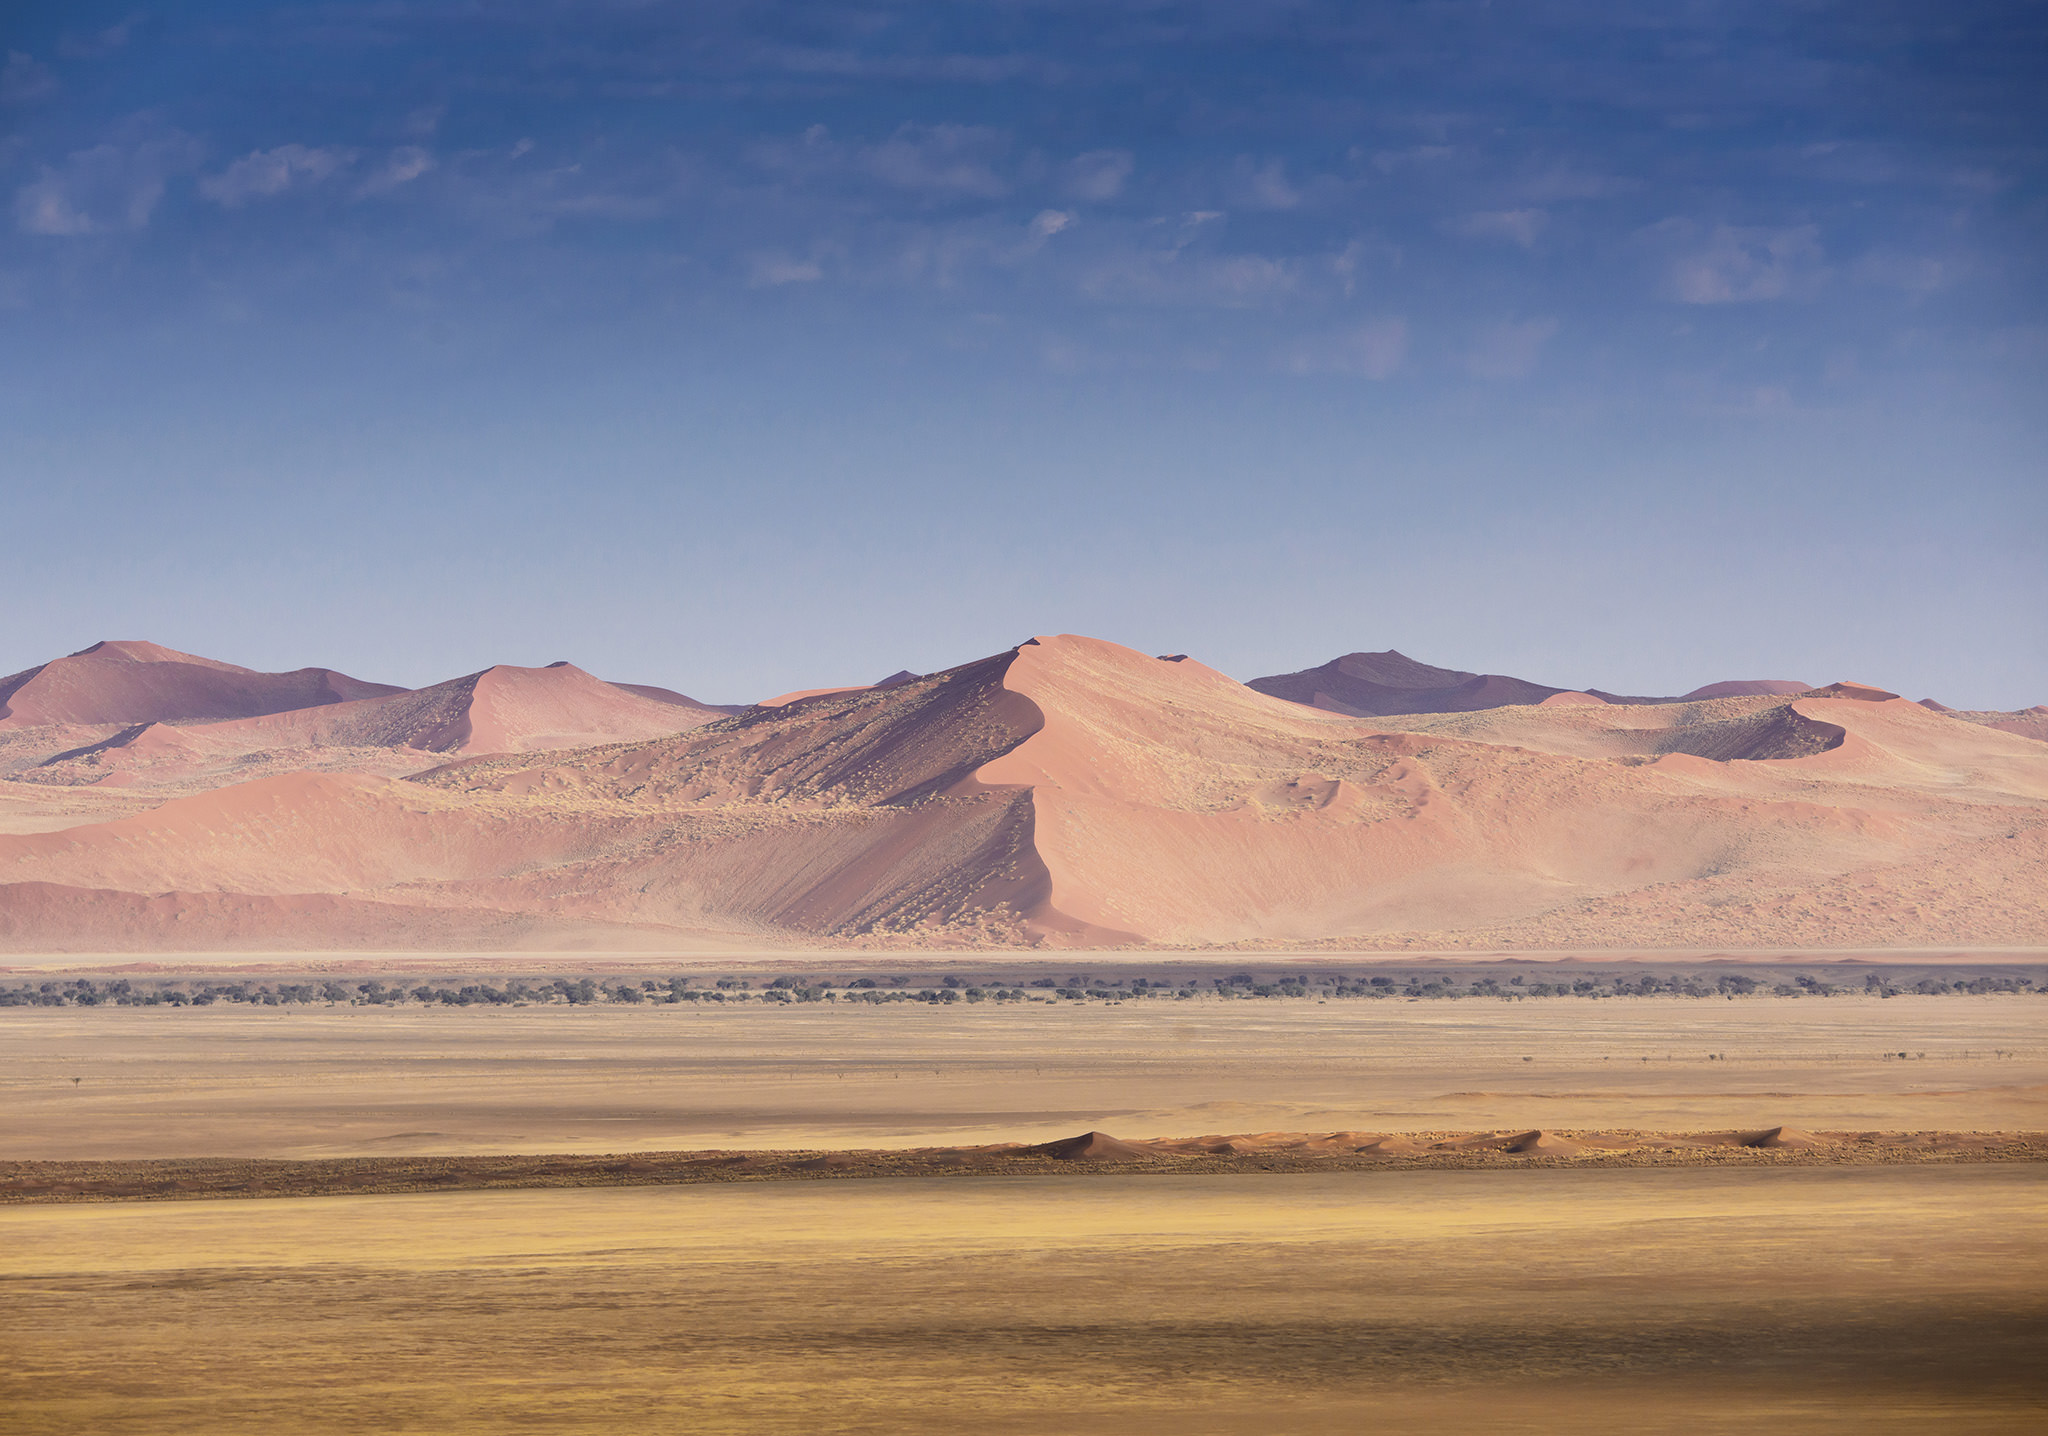 Desert Travels in Namibia with the Nikon Z7